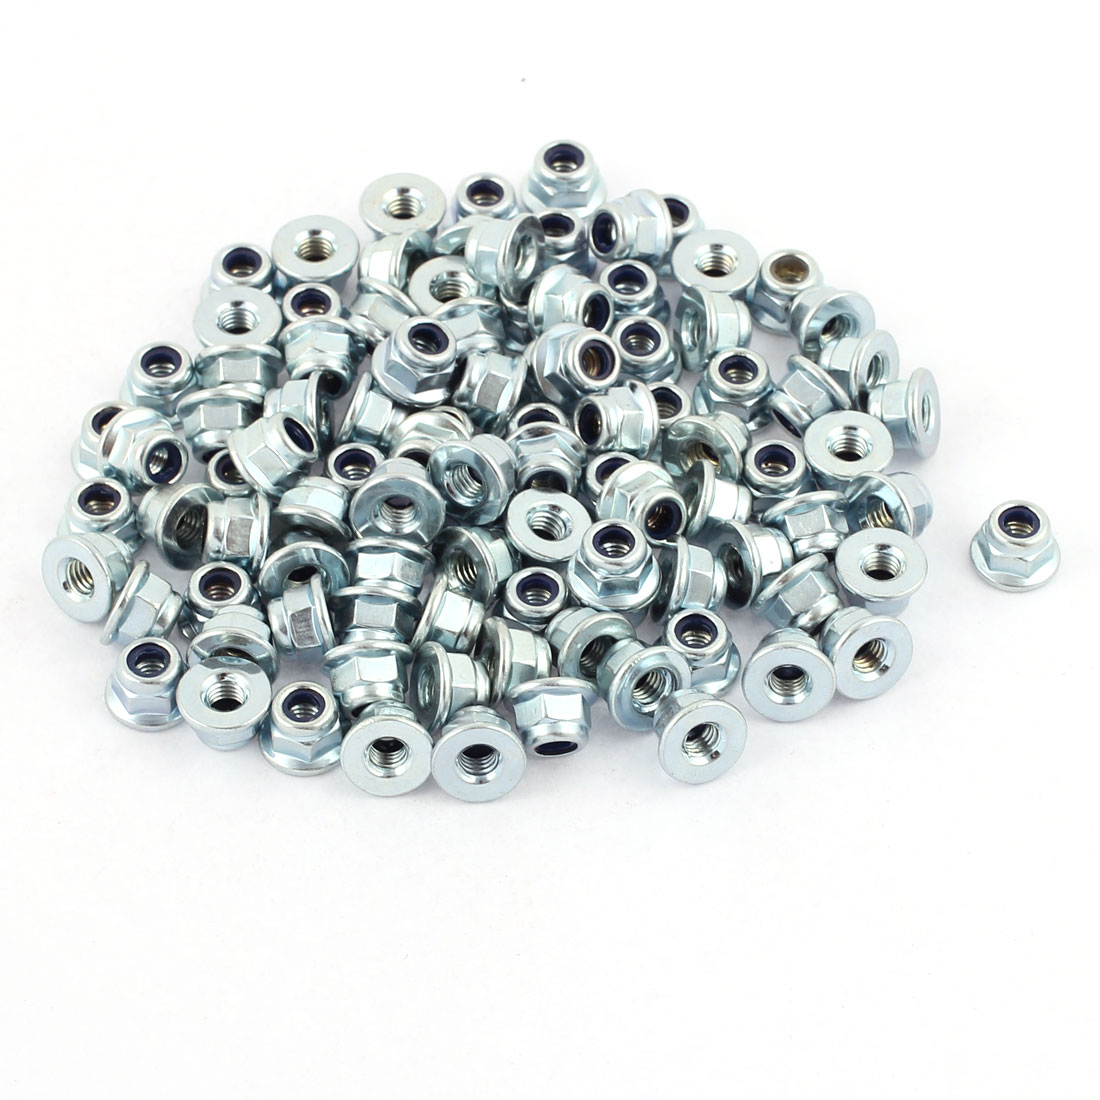 100Pcs M4 Zinc Plated Nylon Insert Hex Hexagon Nylock Flange Nuts Locknuts